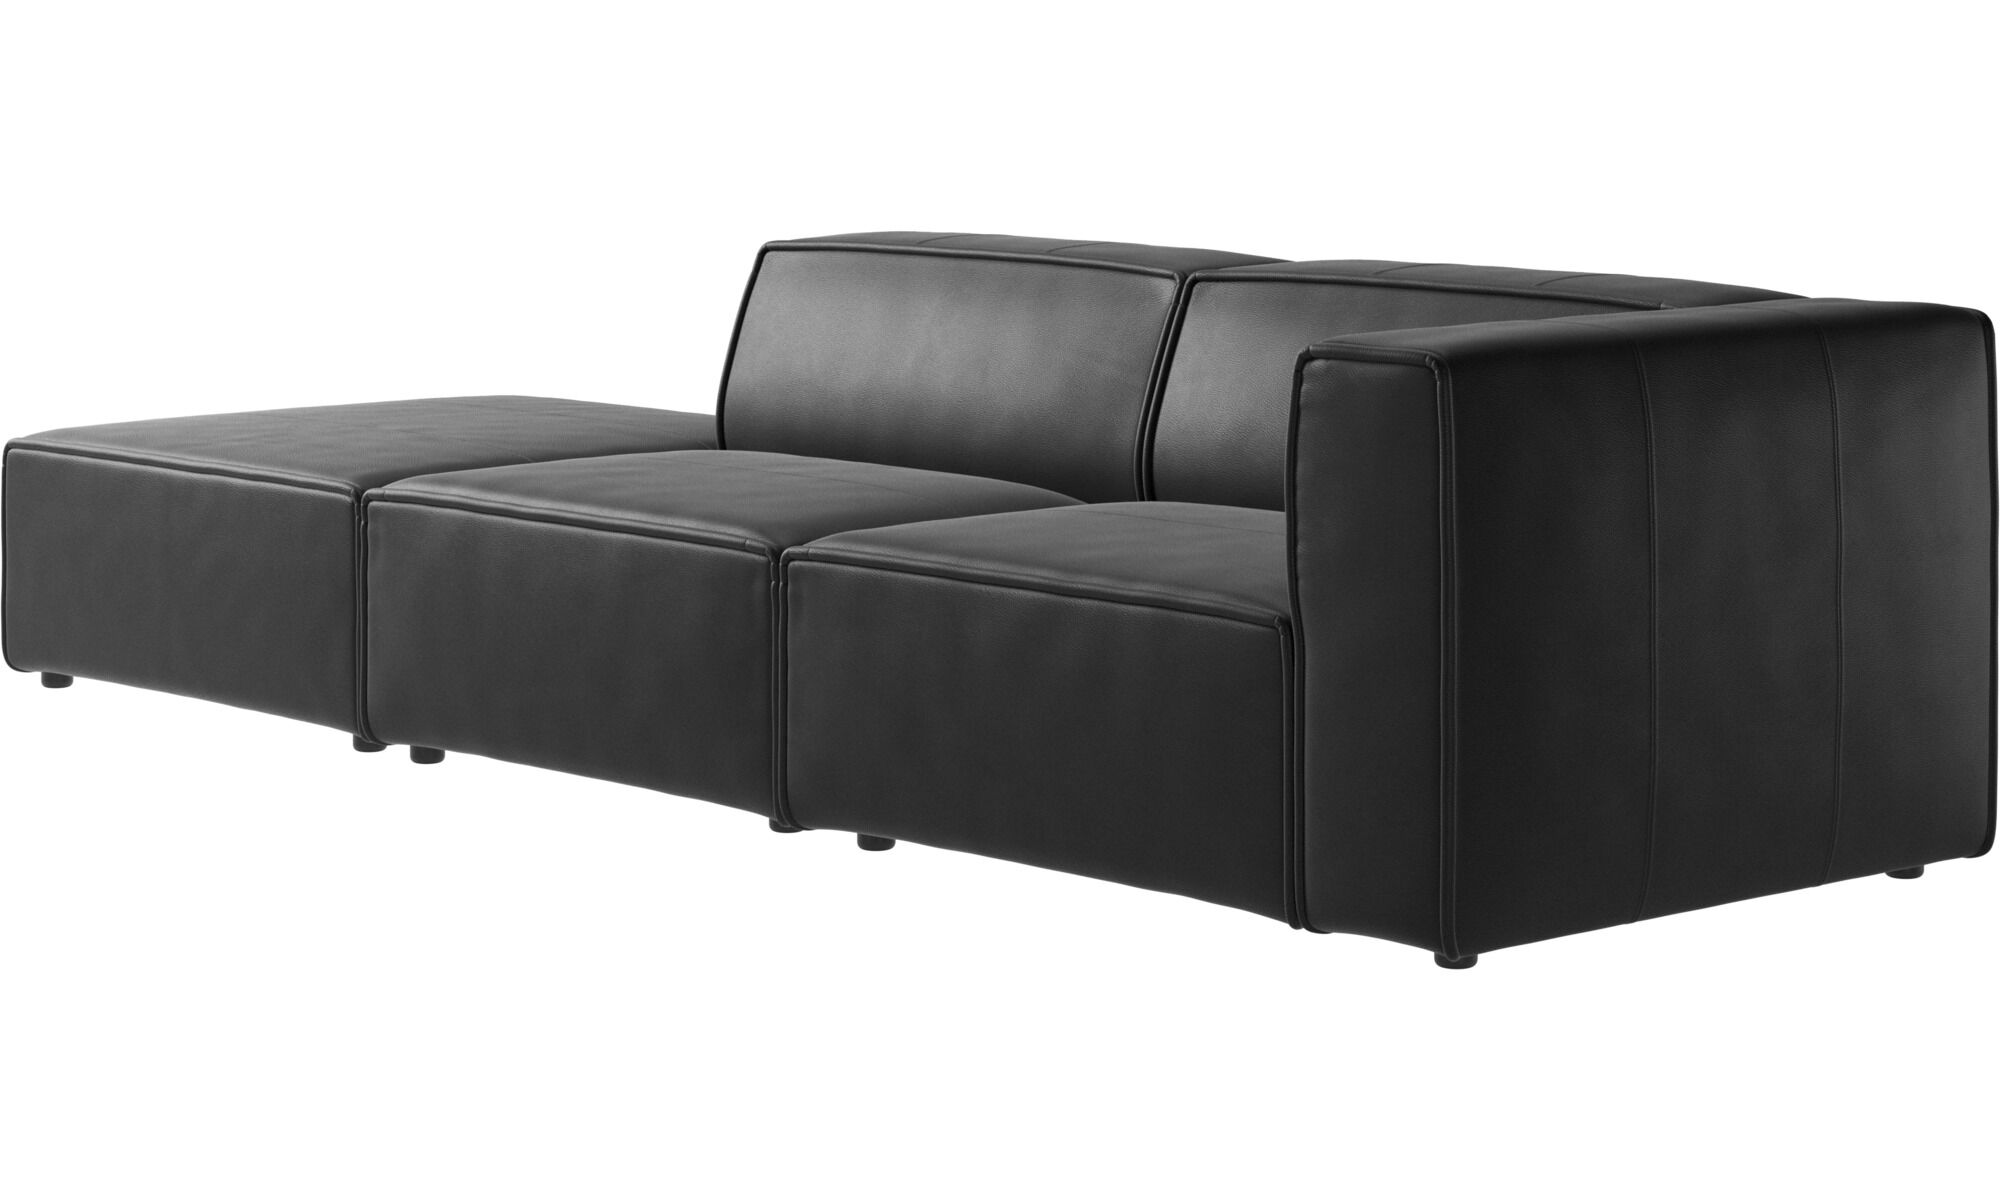 ... Sofas With Open End   Carmo Sofa With Lounging Unit   Black   Leather  ...